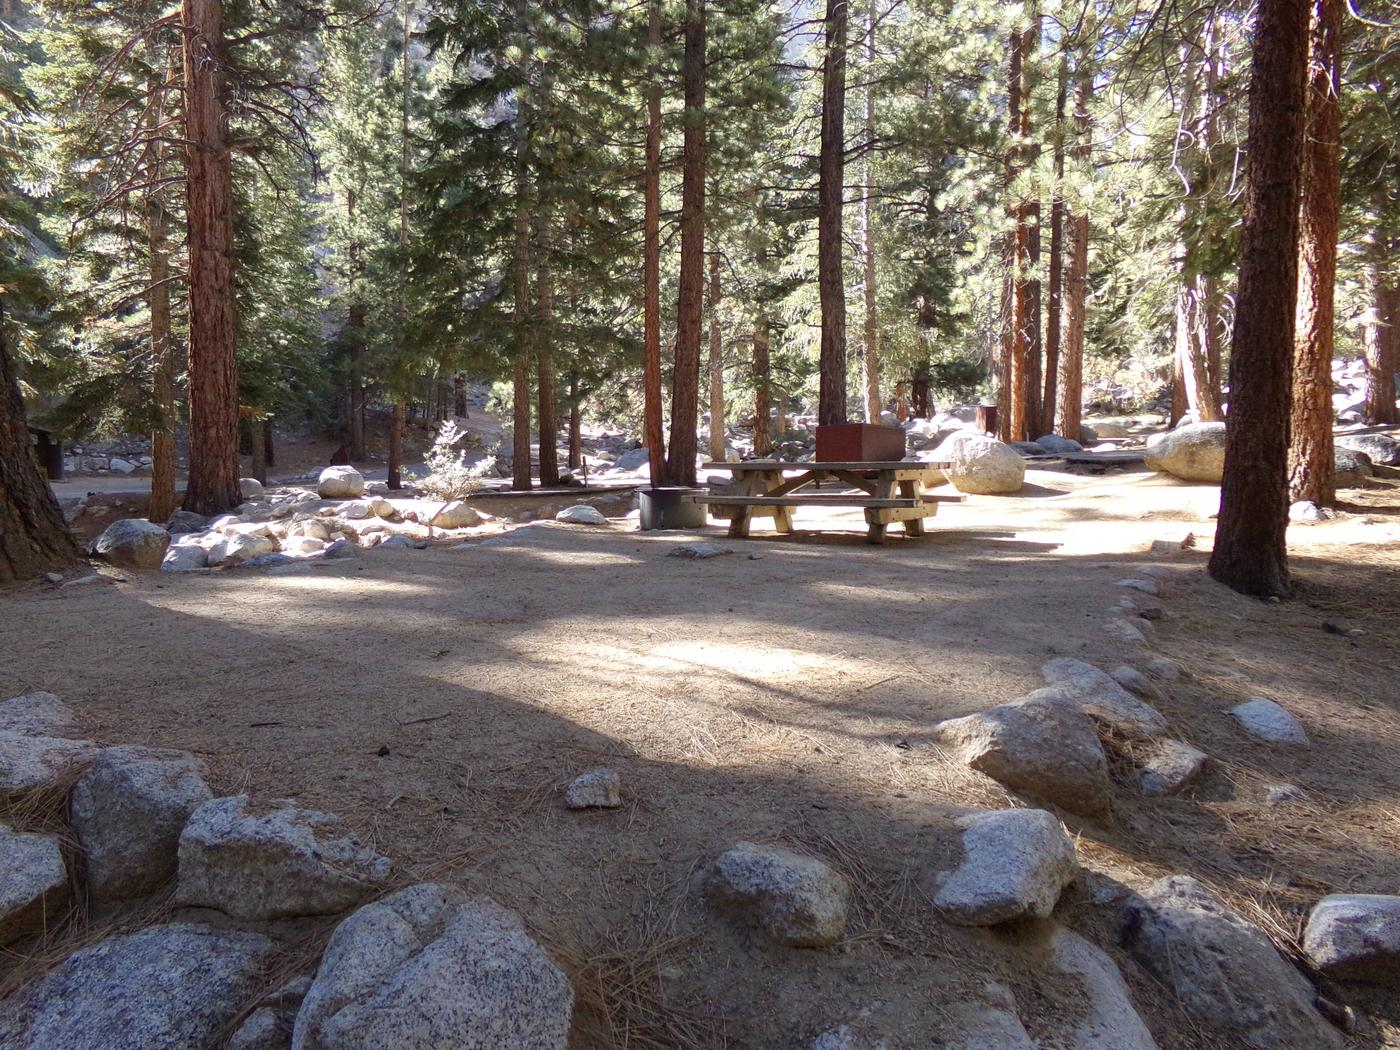 Mt. Whitney Portal Campground site #15 featuring mountain top setting with picnic area and camping space.